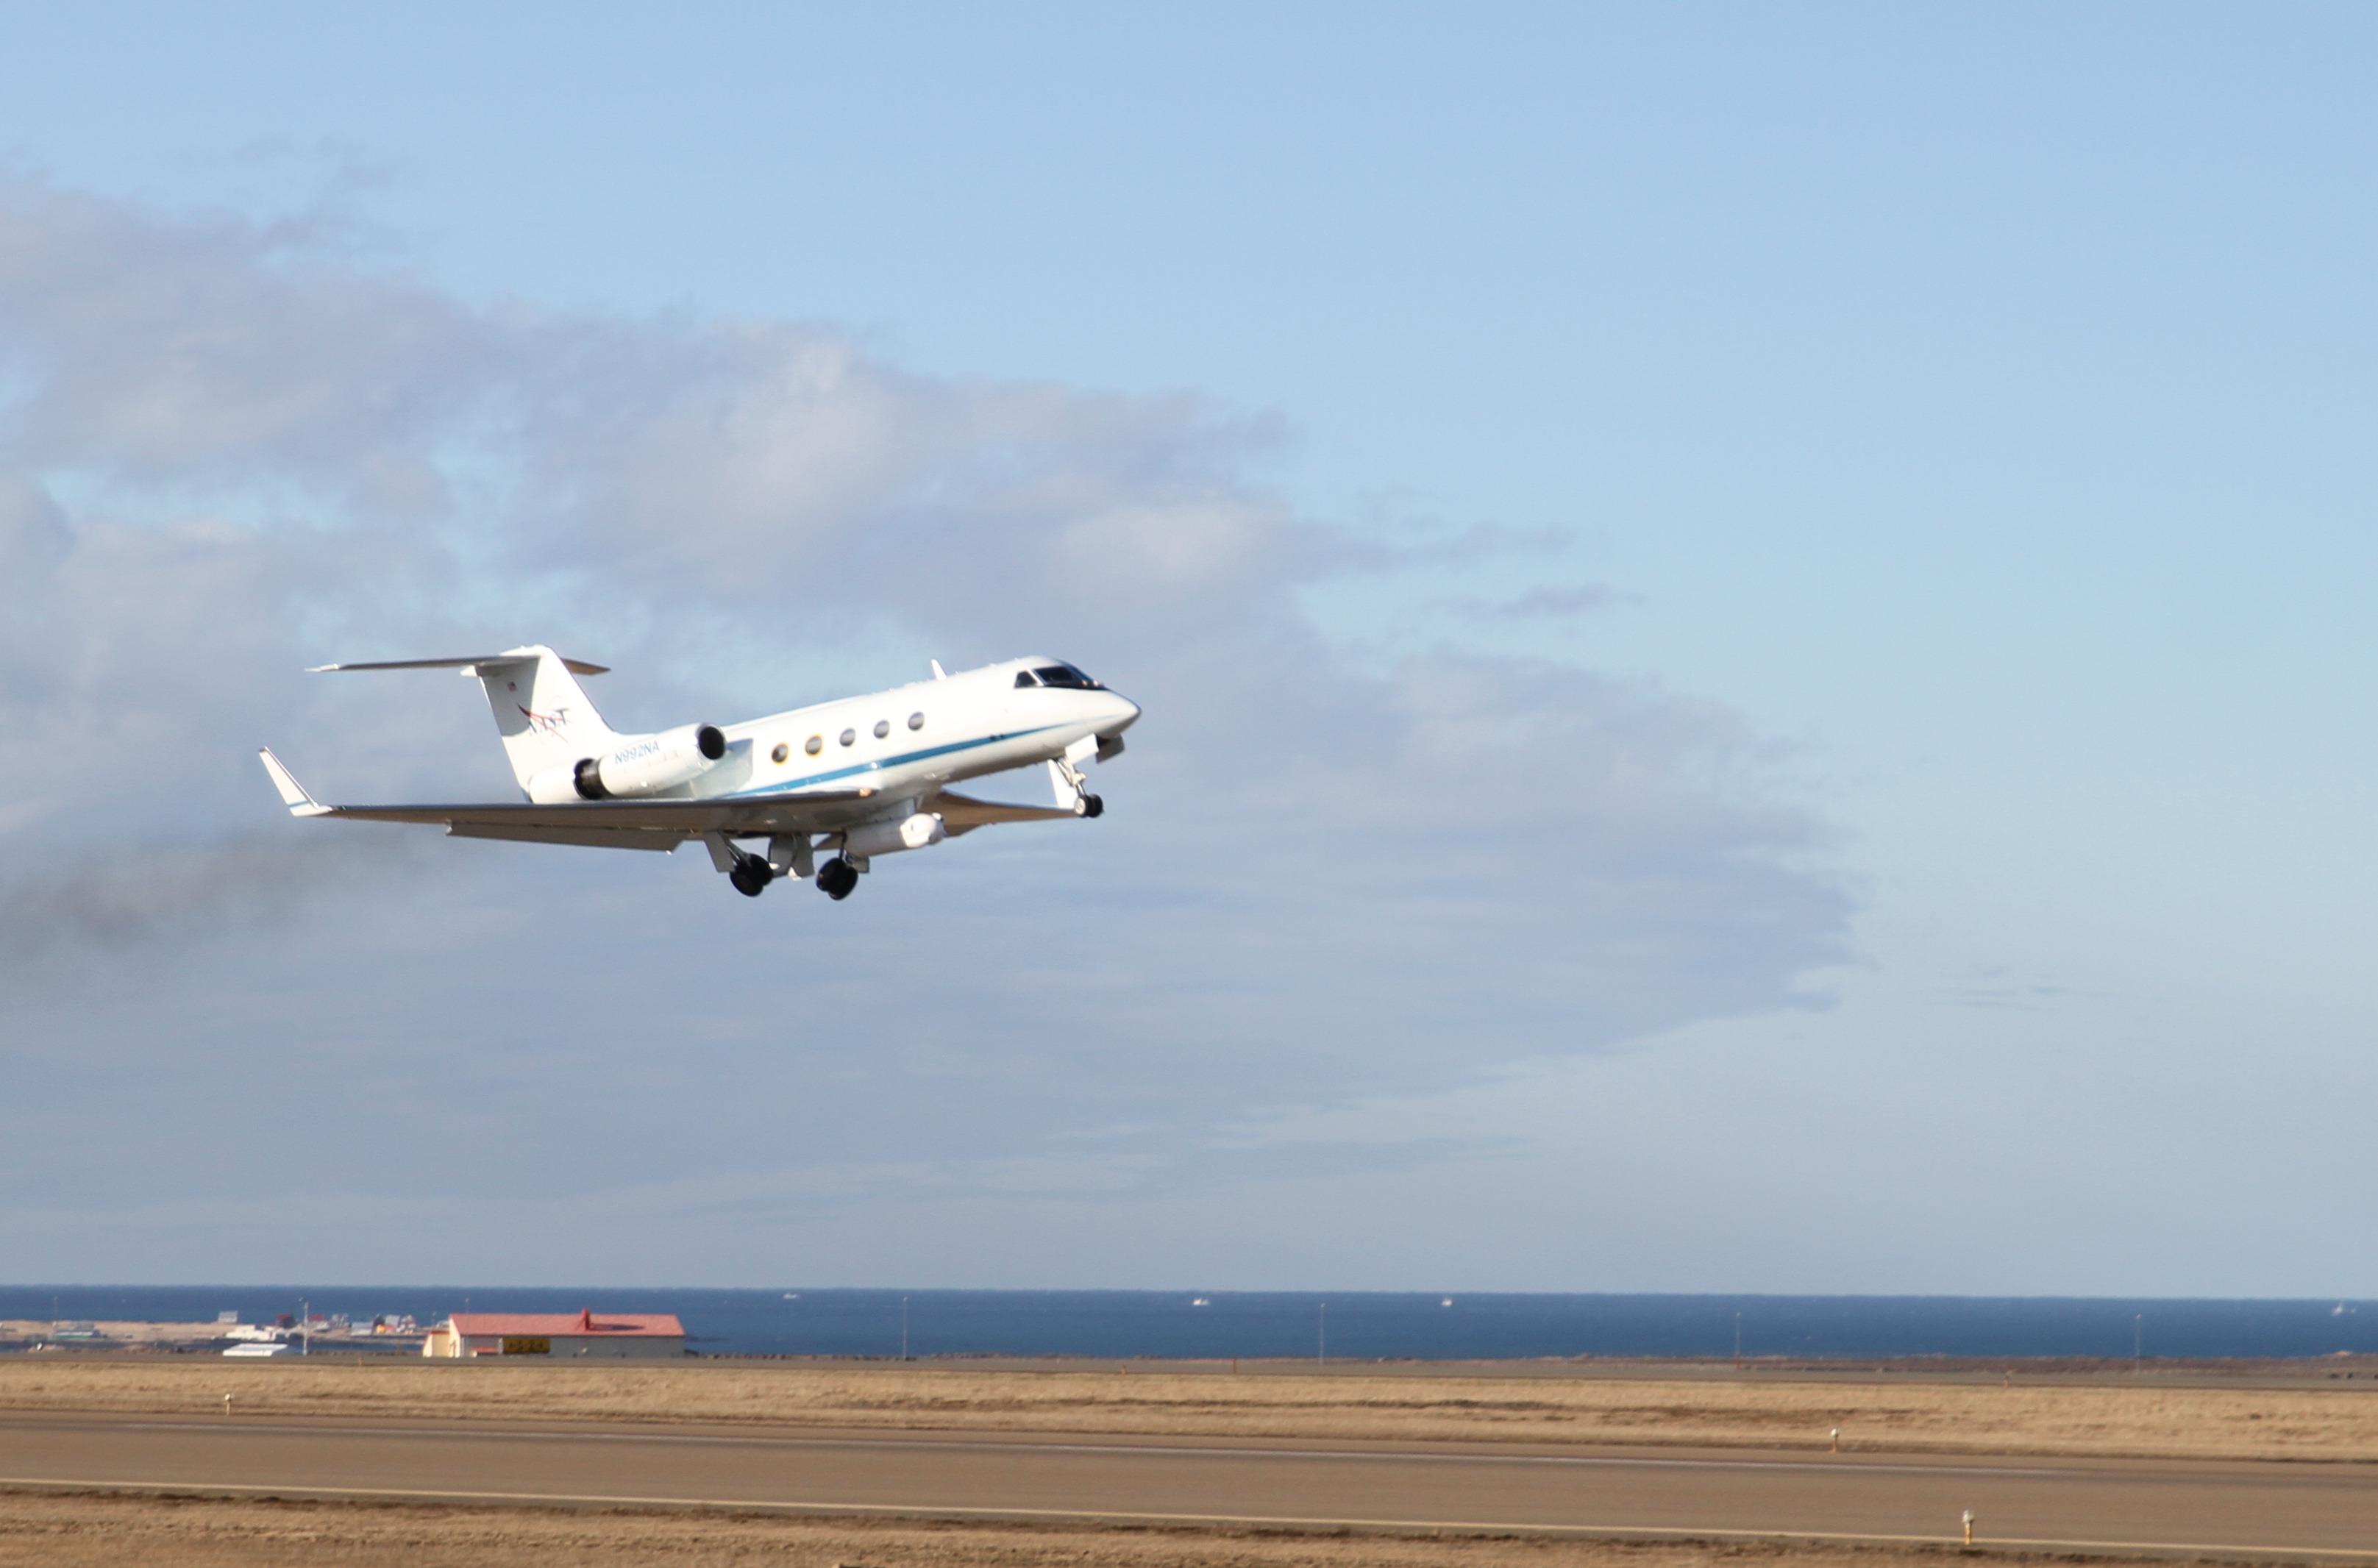 Image of NASA G-III taking off from Iceland.